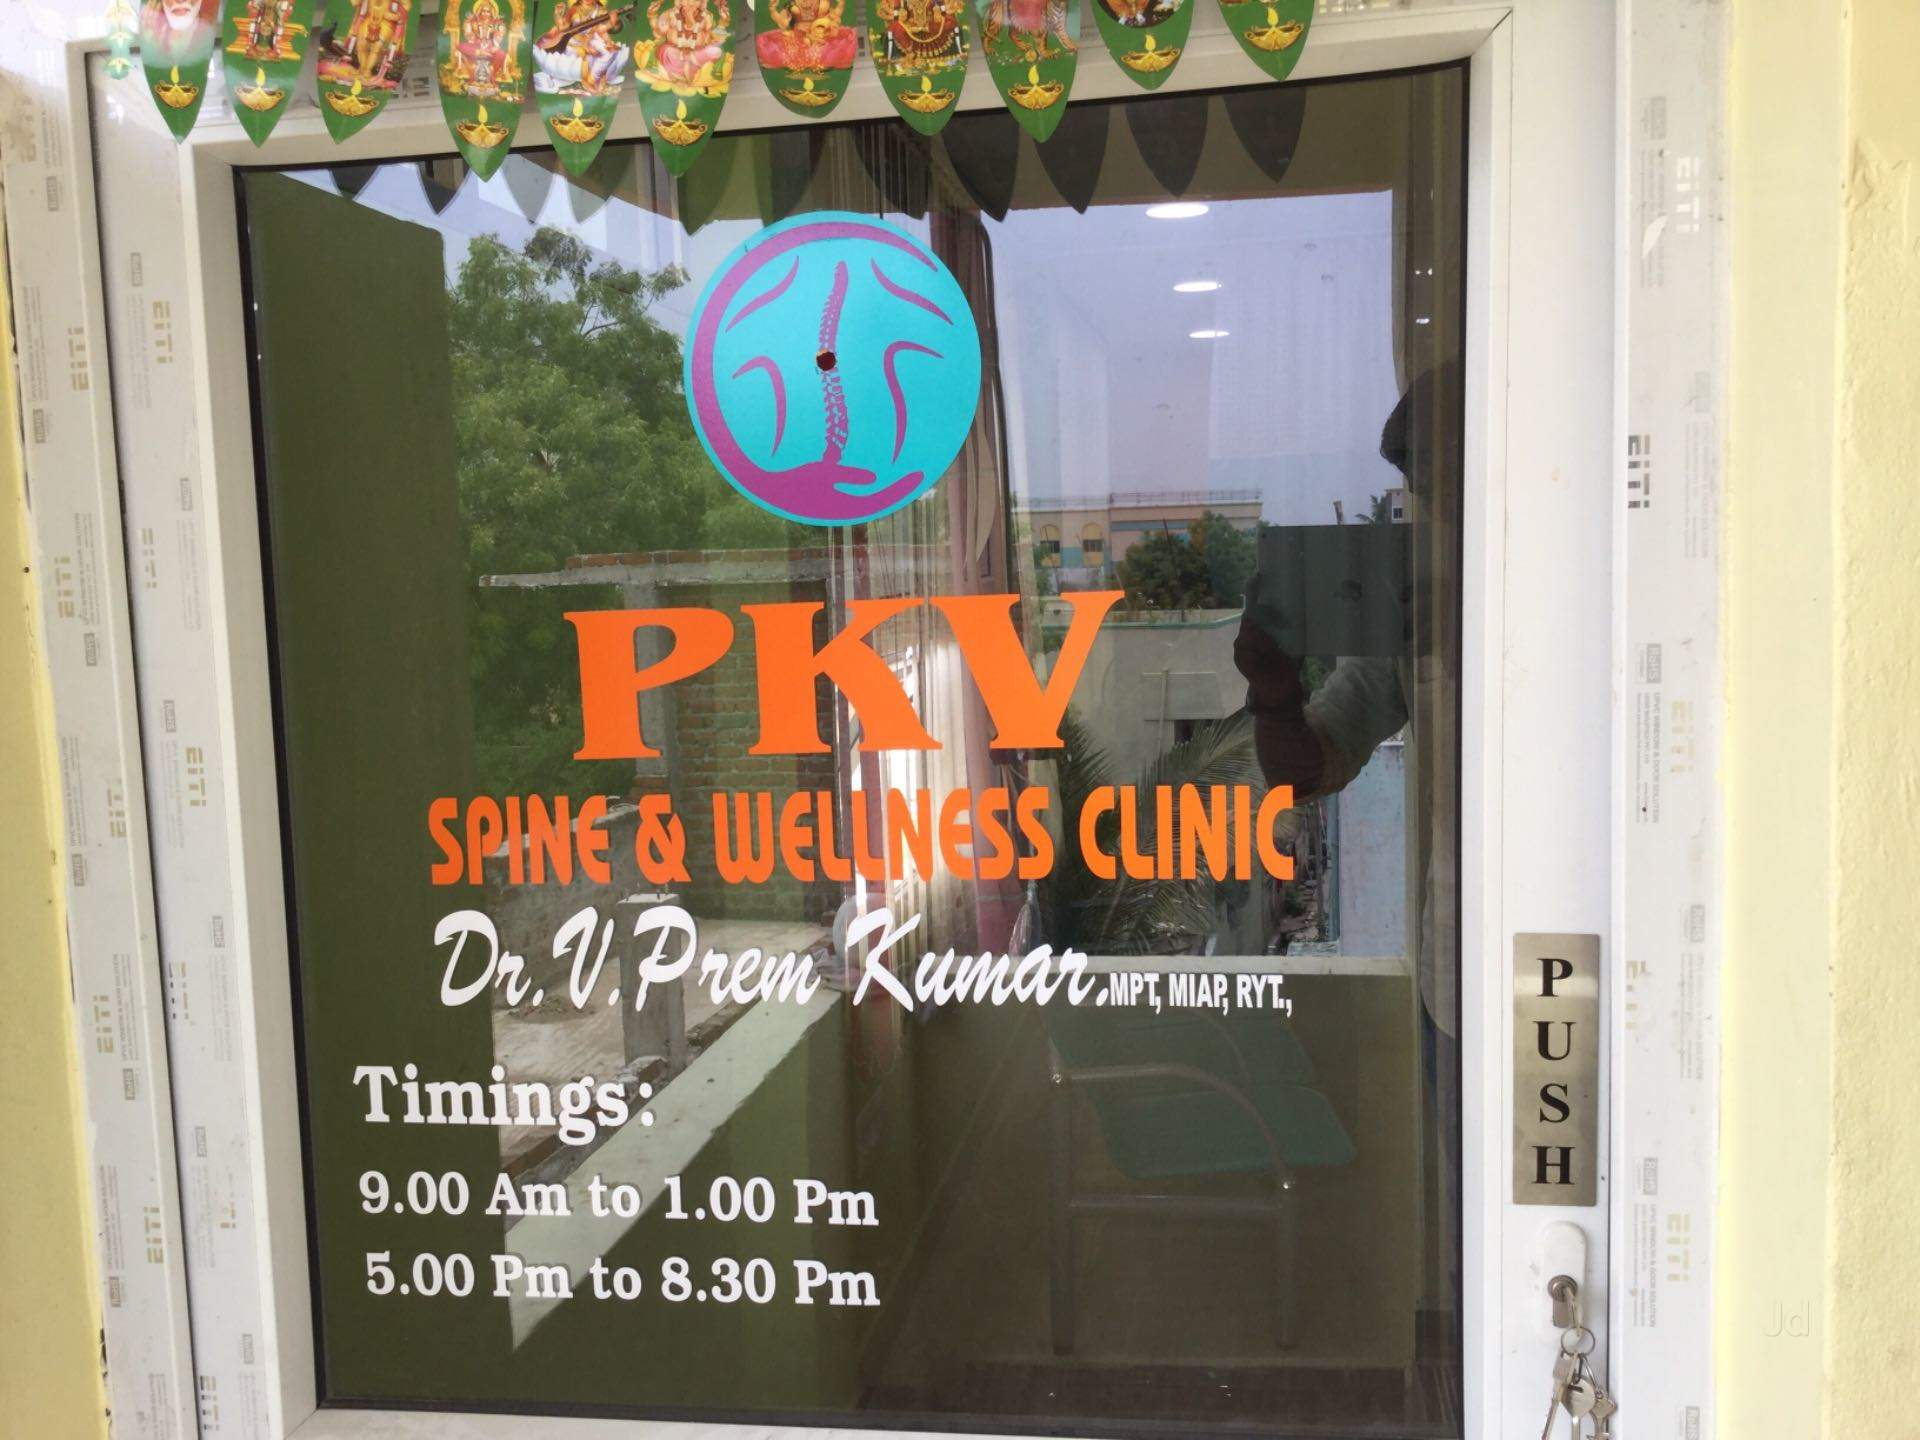 PKV Spine And Wellness Clinic